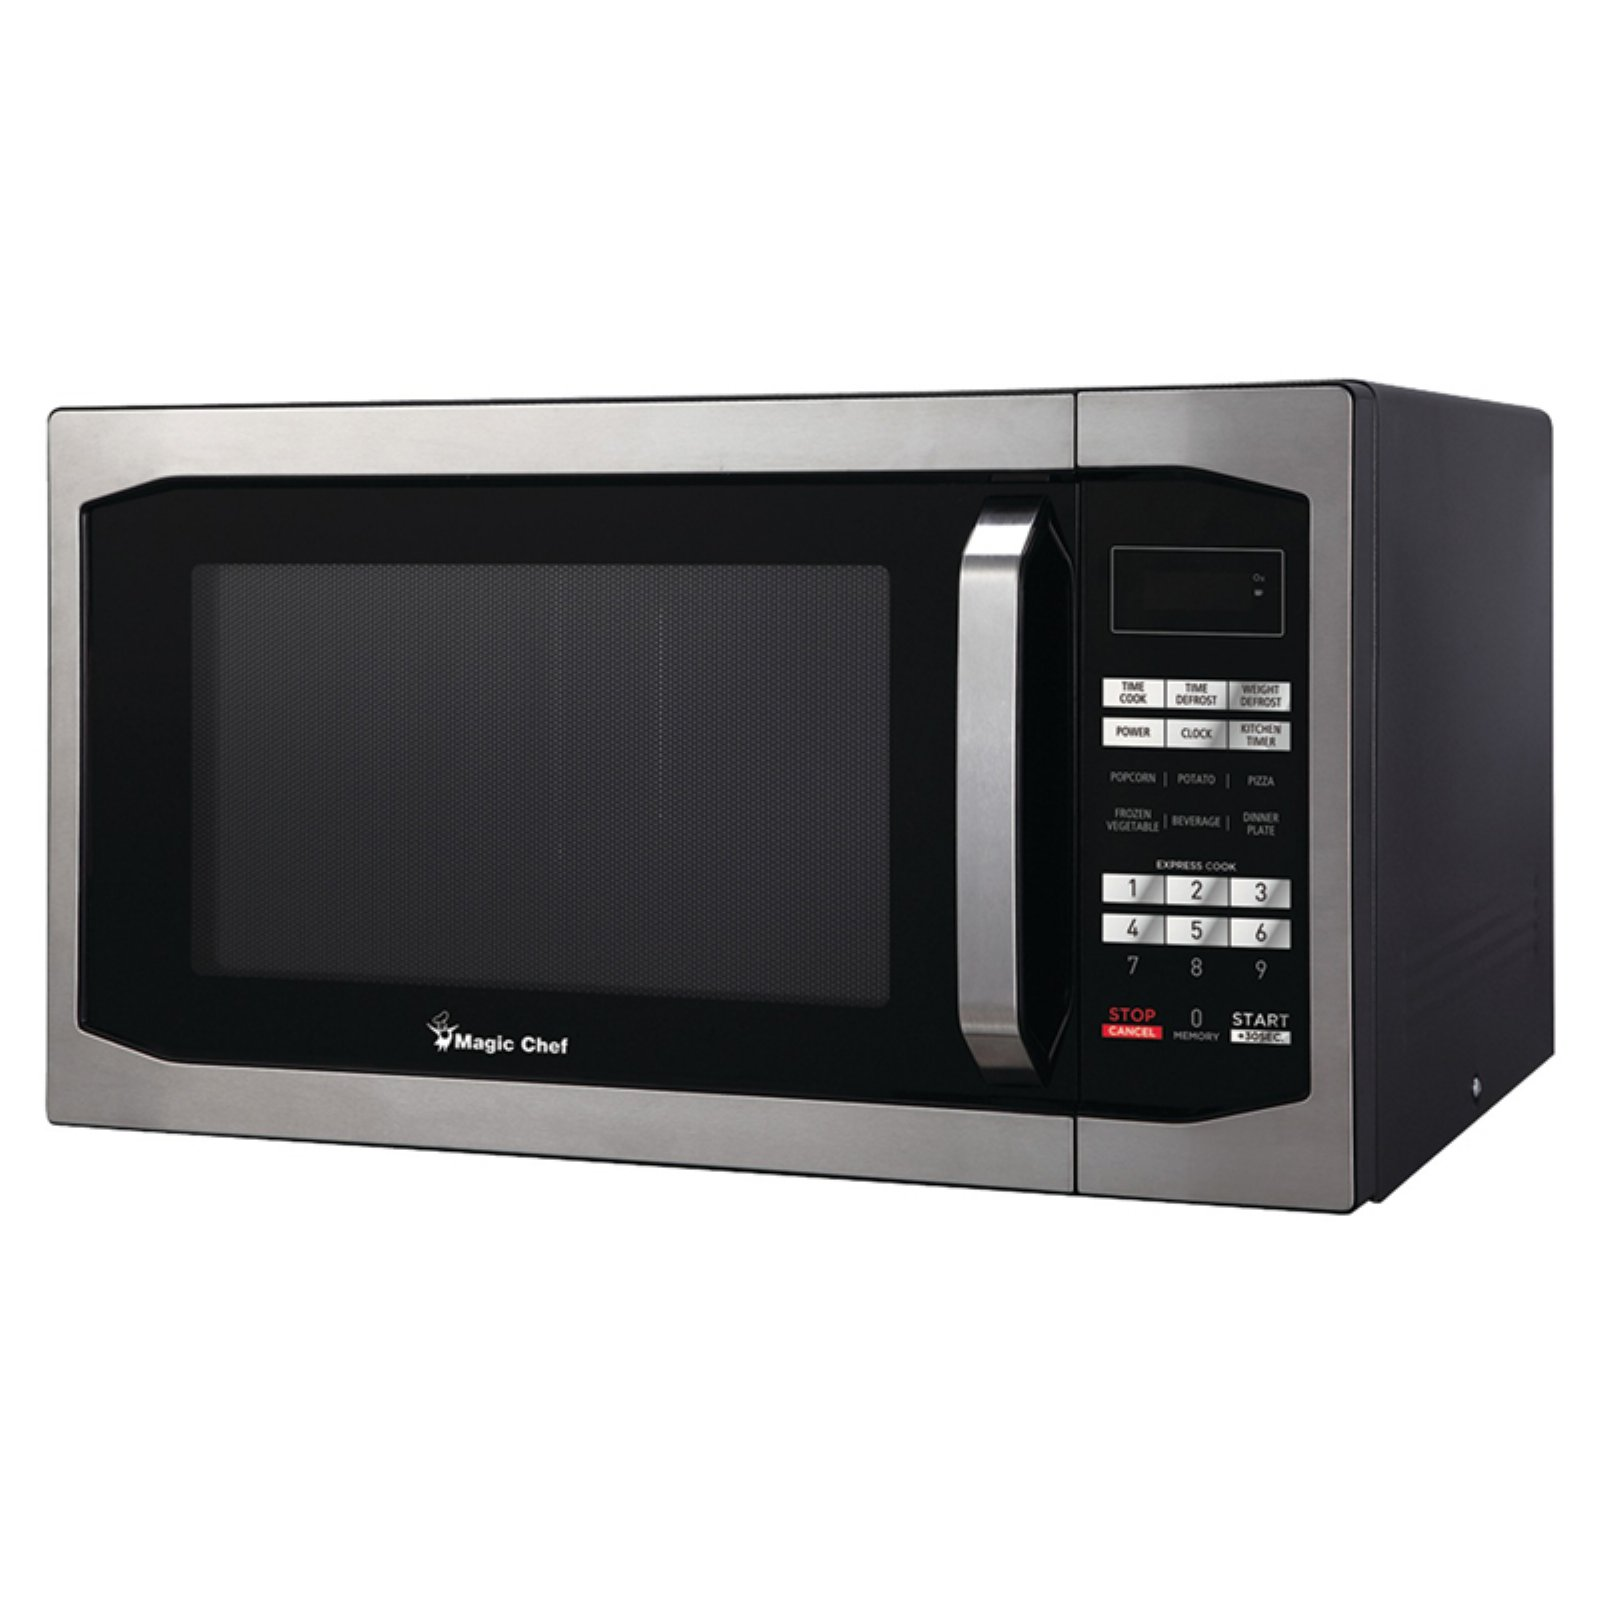 Magic Chef MCM1611ST 1.6 cu ft Countertop Microwave, Stainless Steel